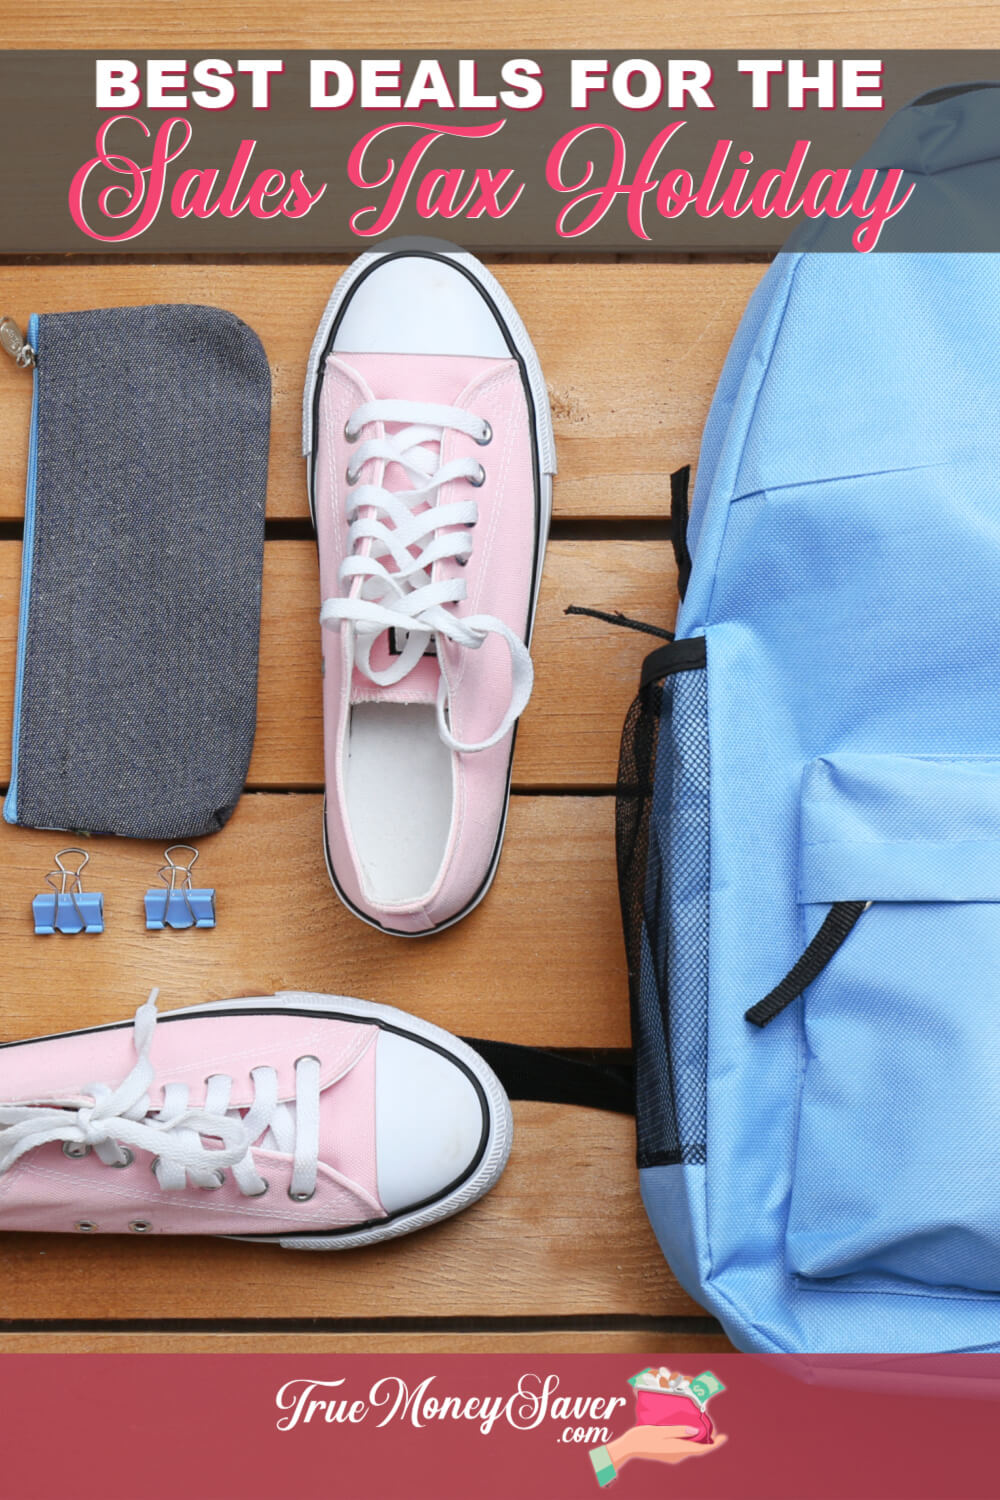 Getting ready for back to school? Don't miss the Back To School Sales Tax Holiday to save even more money! Check out the more than school supply deals you can get during the sales tax holiday!  #truemoneysaver #backtoschool #salestaxholiday #backtoschoolsalestaxholiday #schoolsupplies #backtoschooltips #backtoschoolsales #backtoschoolshopping